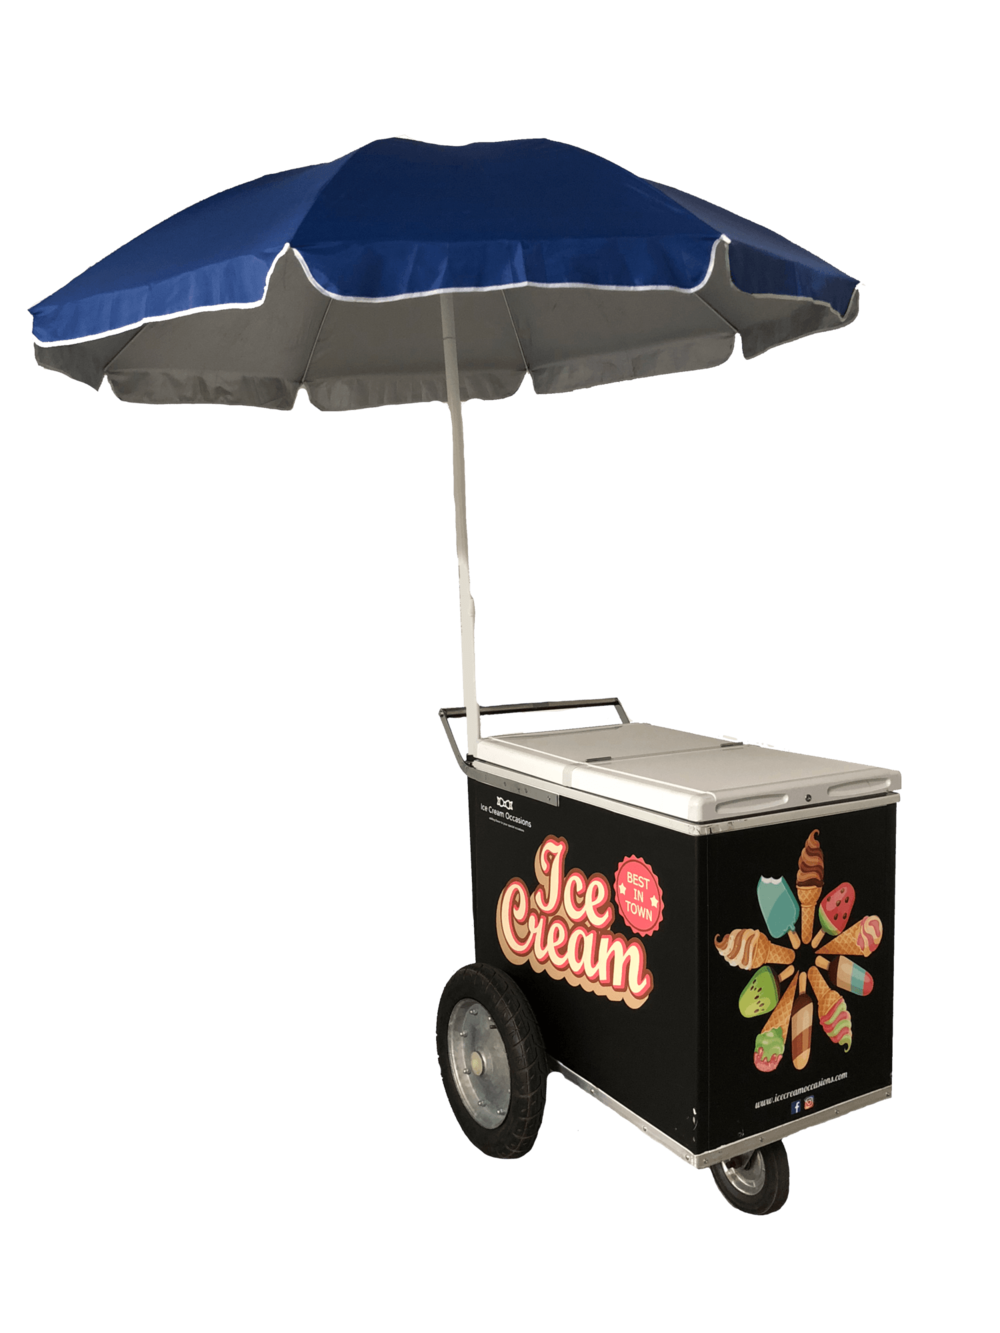 ICE CREAM CART RENTAL - Rent our unique ice cream cart. It's a classic and a favorite among our customers. Also comes in white! Cart rental is $299. Includes Delivery, Pickup, and 60 FREE pieces of your choice of ice cream (Mochi Ice Cream Extra). Umbrella included at no additional charge. Need more than 60 pieces? Sure, just request it. Choose from the LARGEST selection of ice cream in the industry!